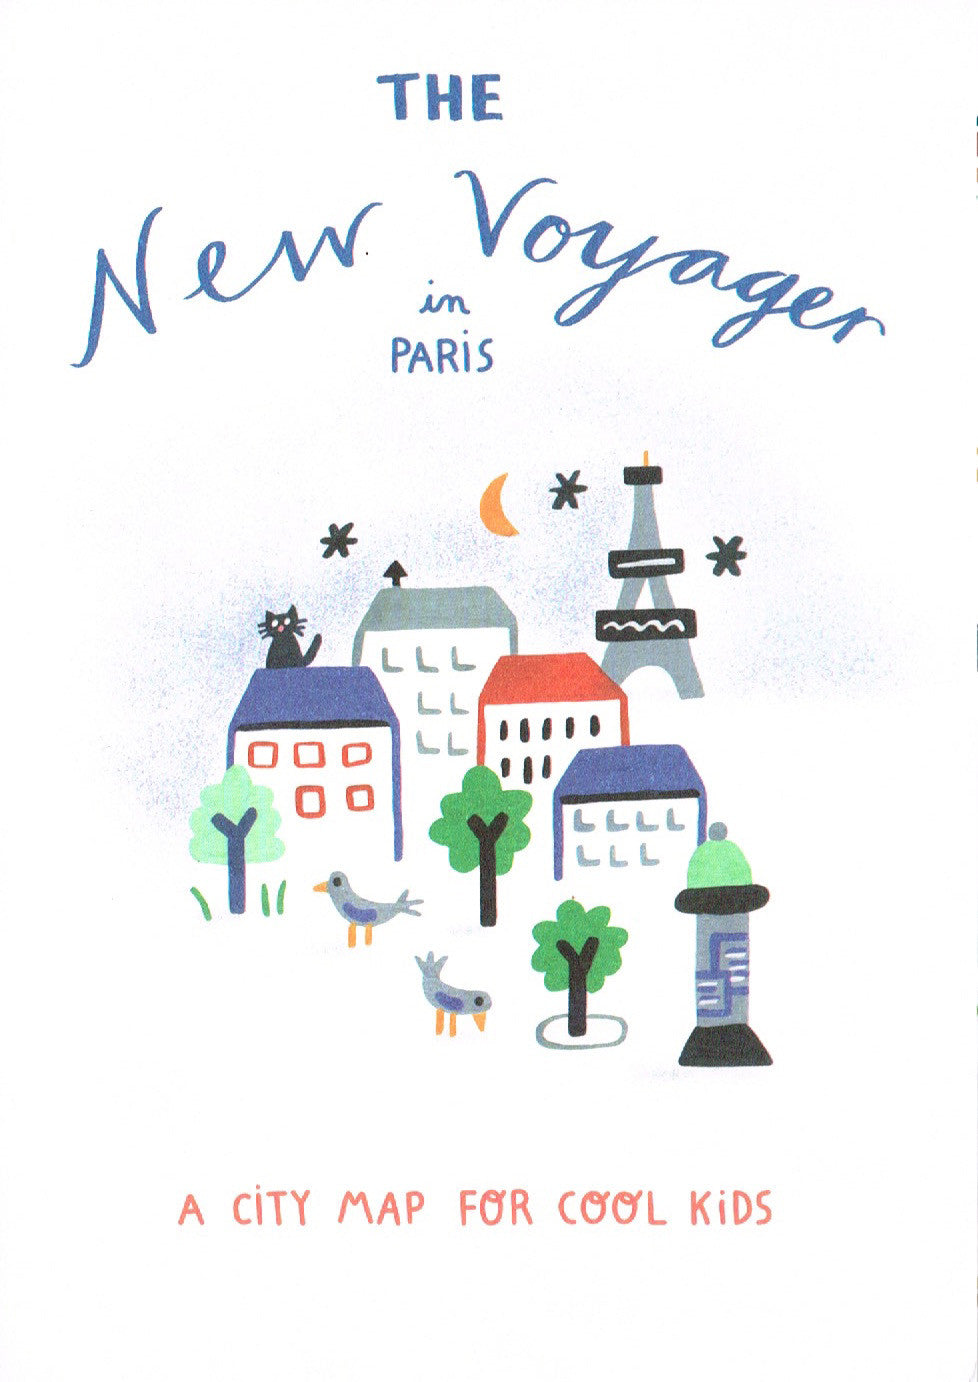 THE NEW VOYAGER IN PARIS